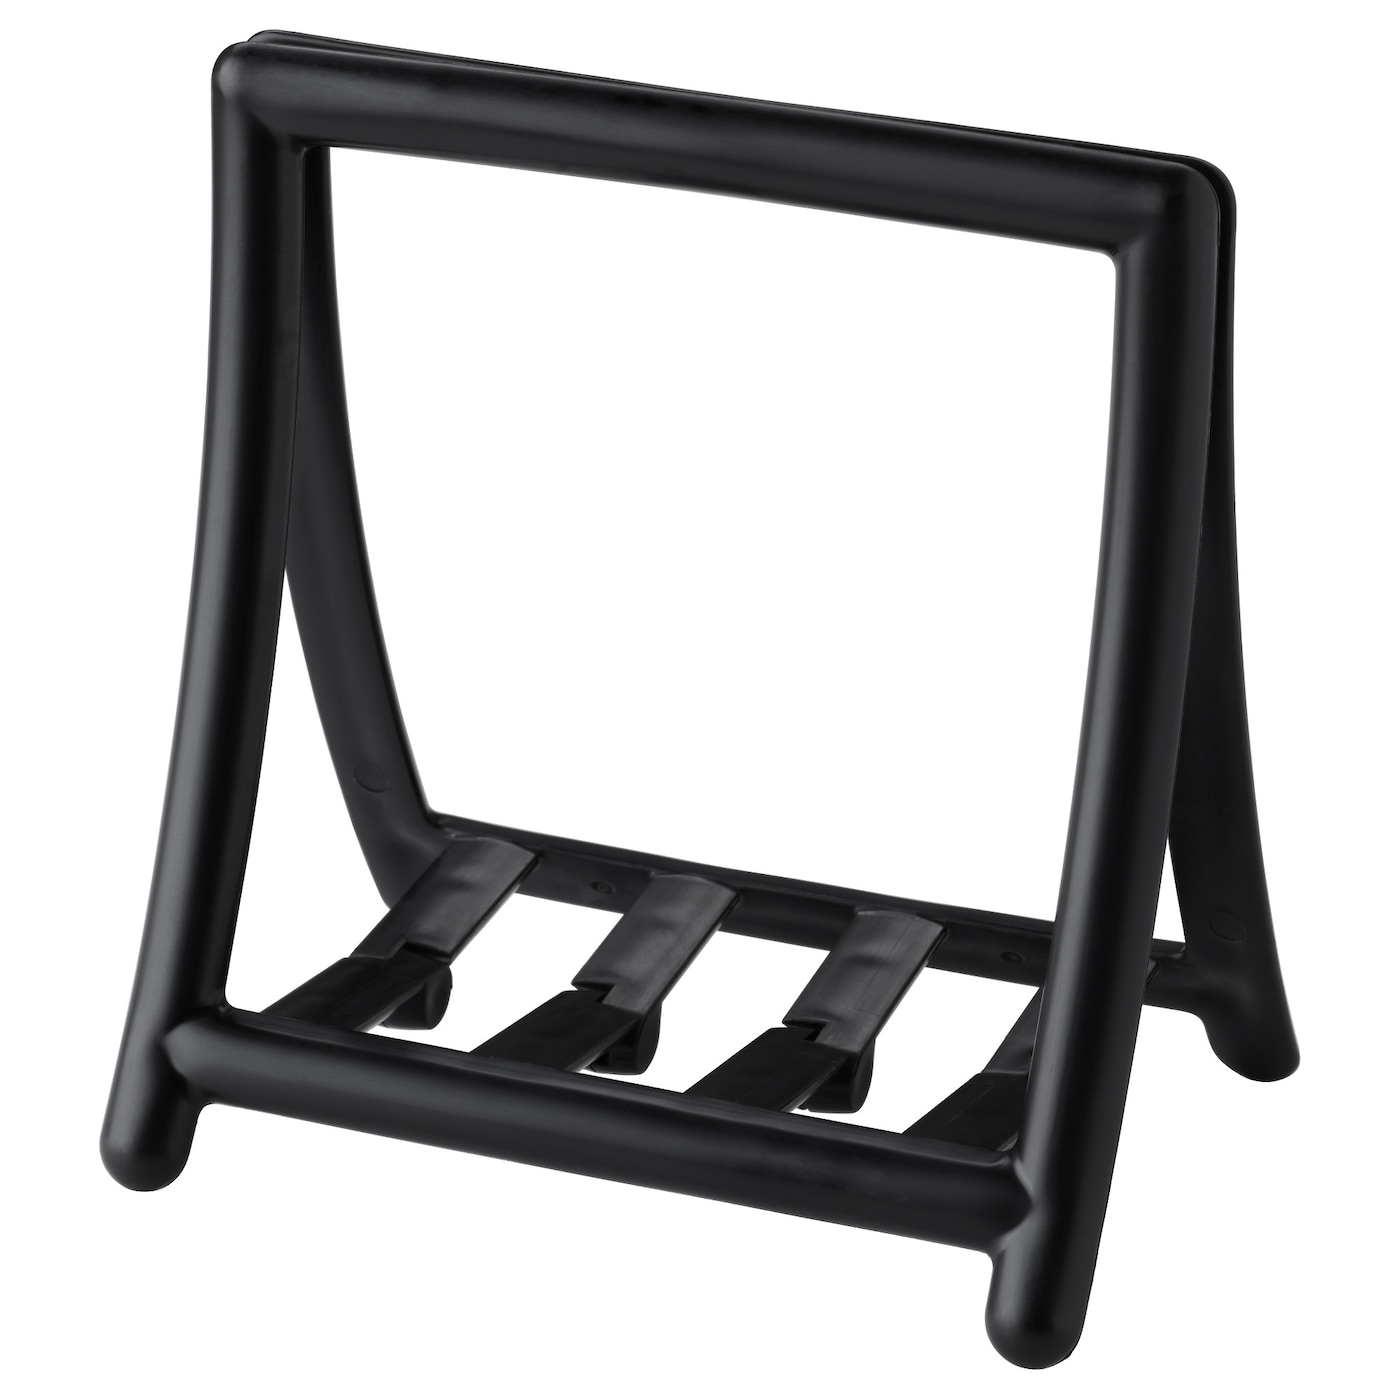 IKEA GREJA napkin holder